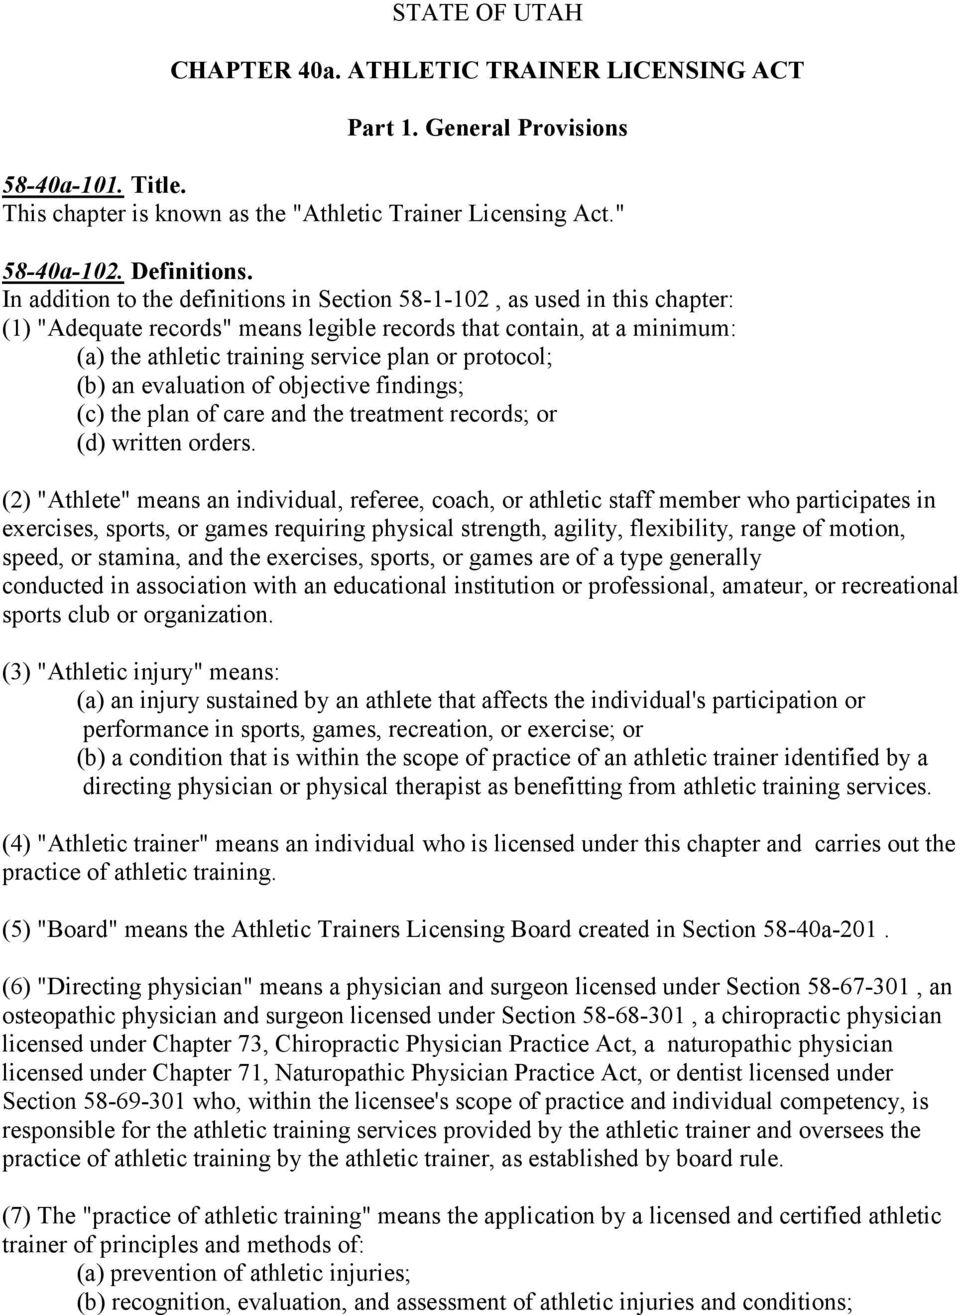 State Of Utah Chapter 40a Athletic Trainer Licensing Act Part 1